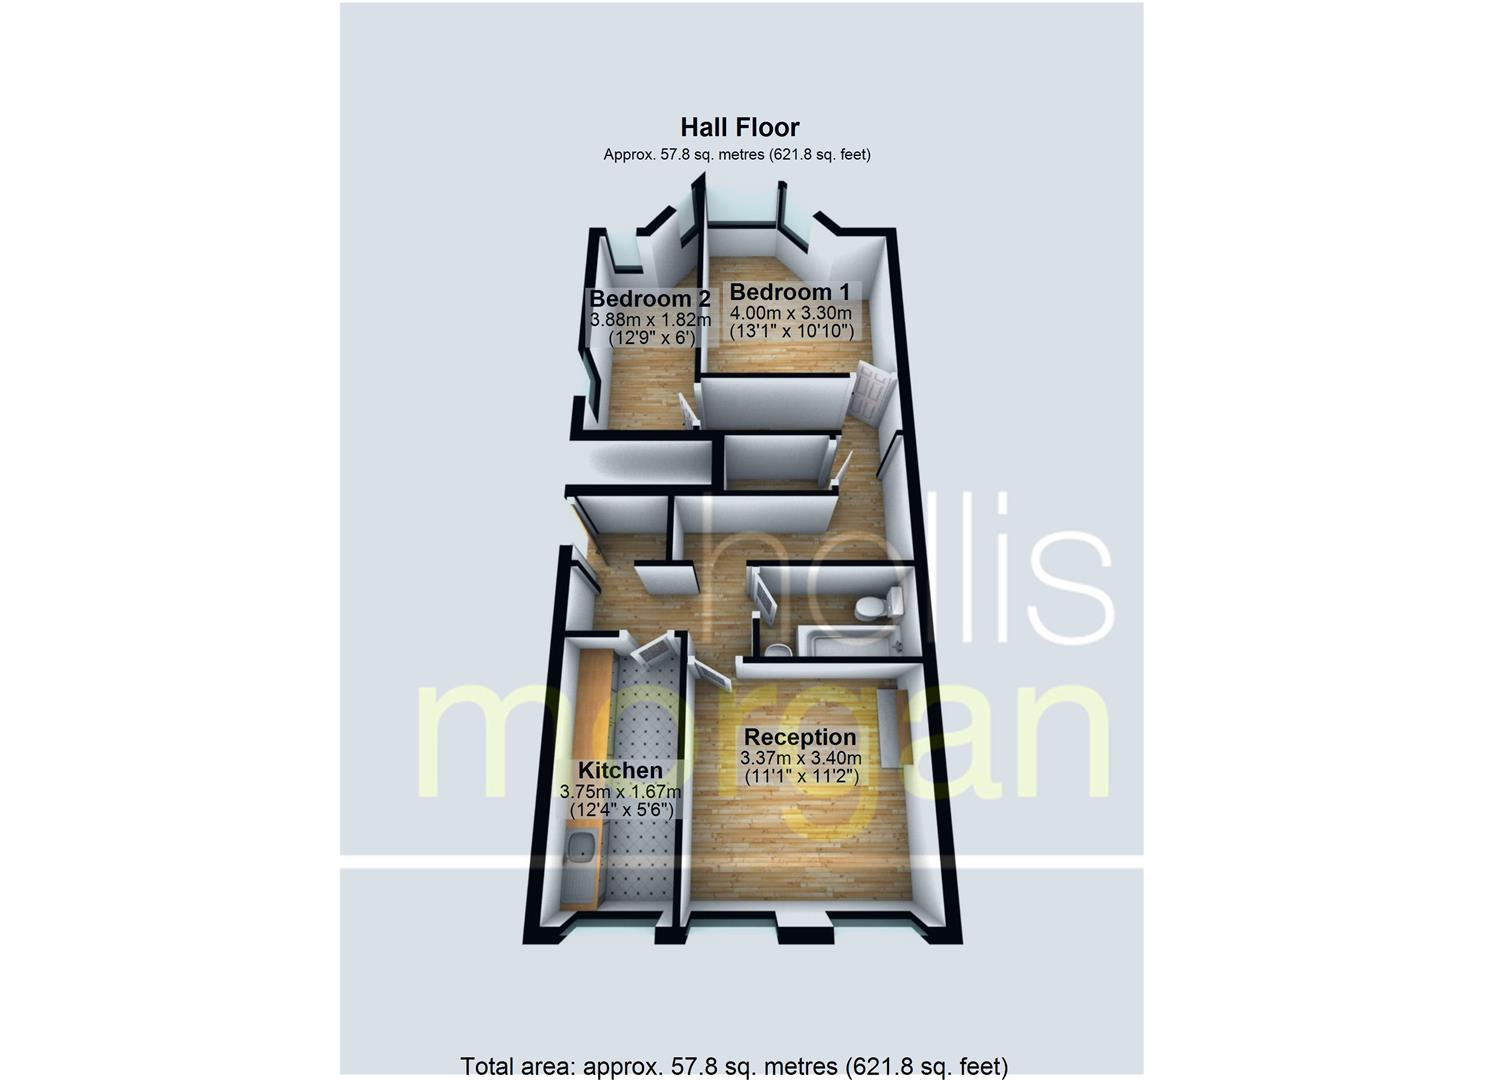 Floorplans For HALL FLOOR FLAT FOR BASIC UPDATING